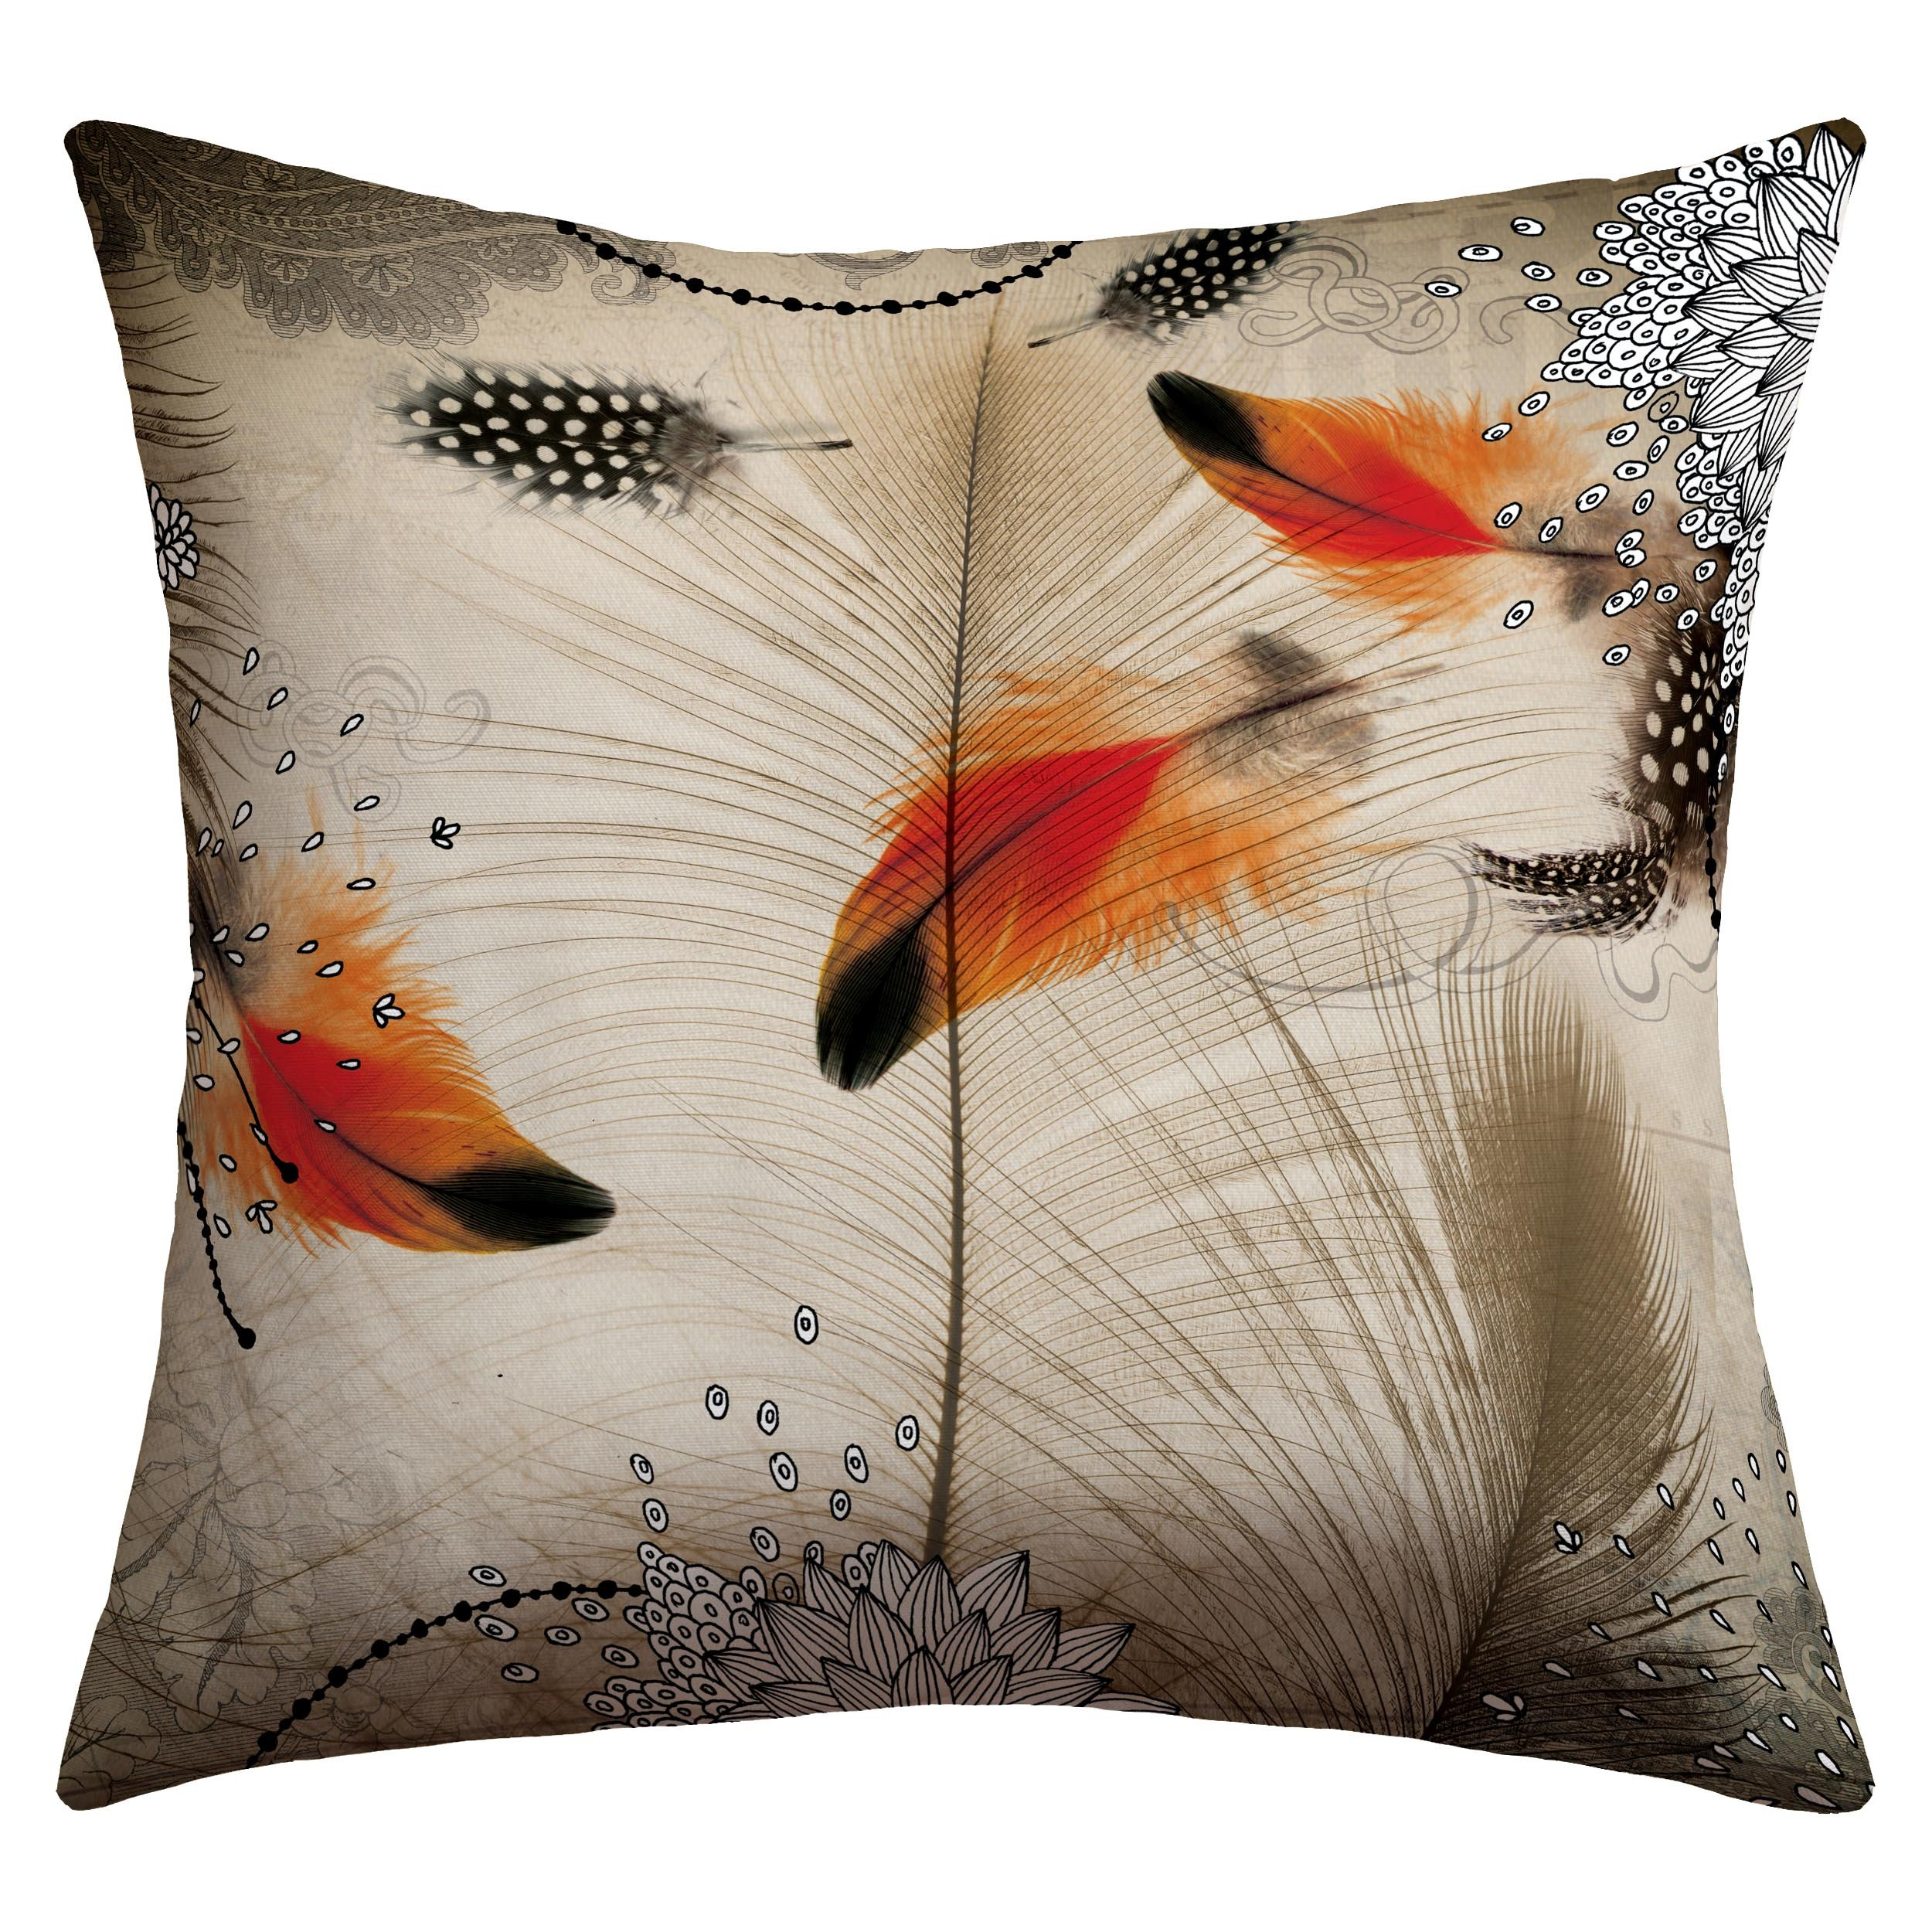 Deny Designs Iveta Abolina Feather Dance Outdoor Throw Pillow, 20 x 20